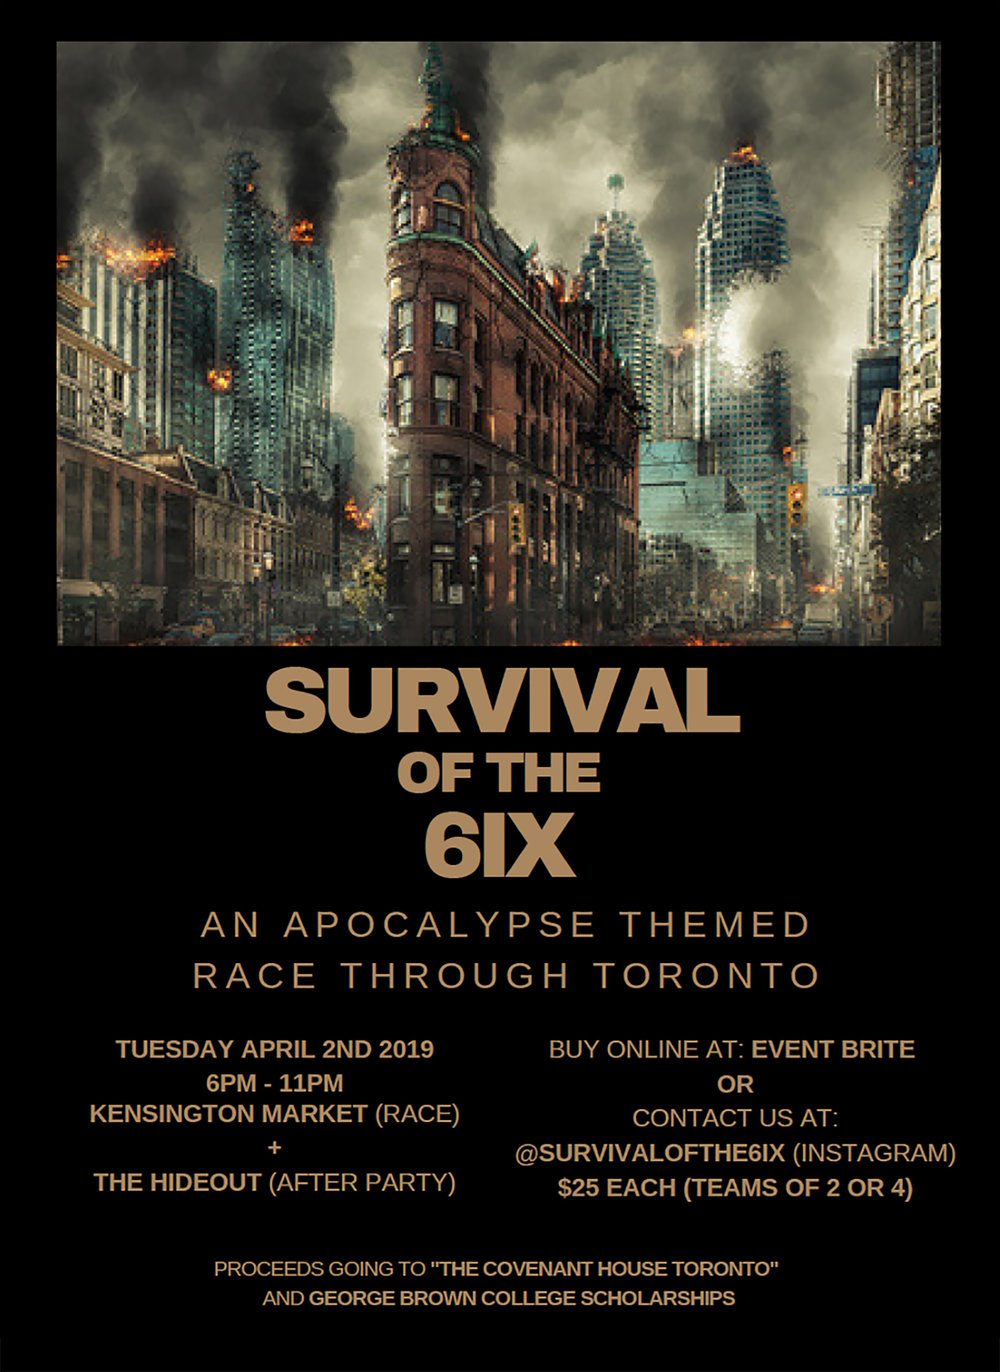 Survivalofthe6ix-19apr2-lrg.jpg